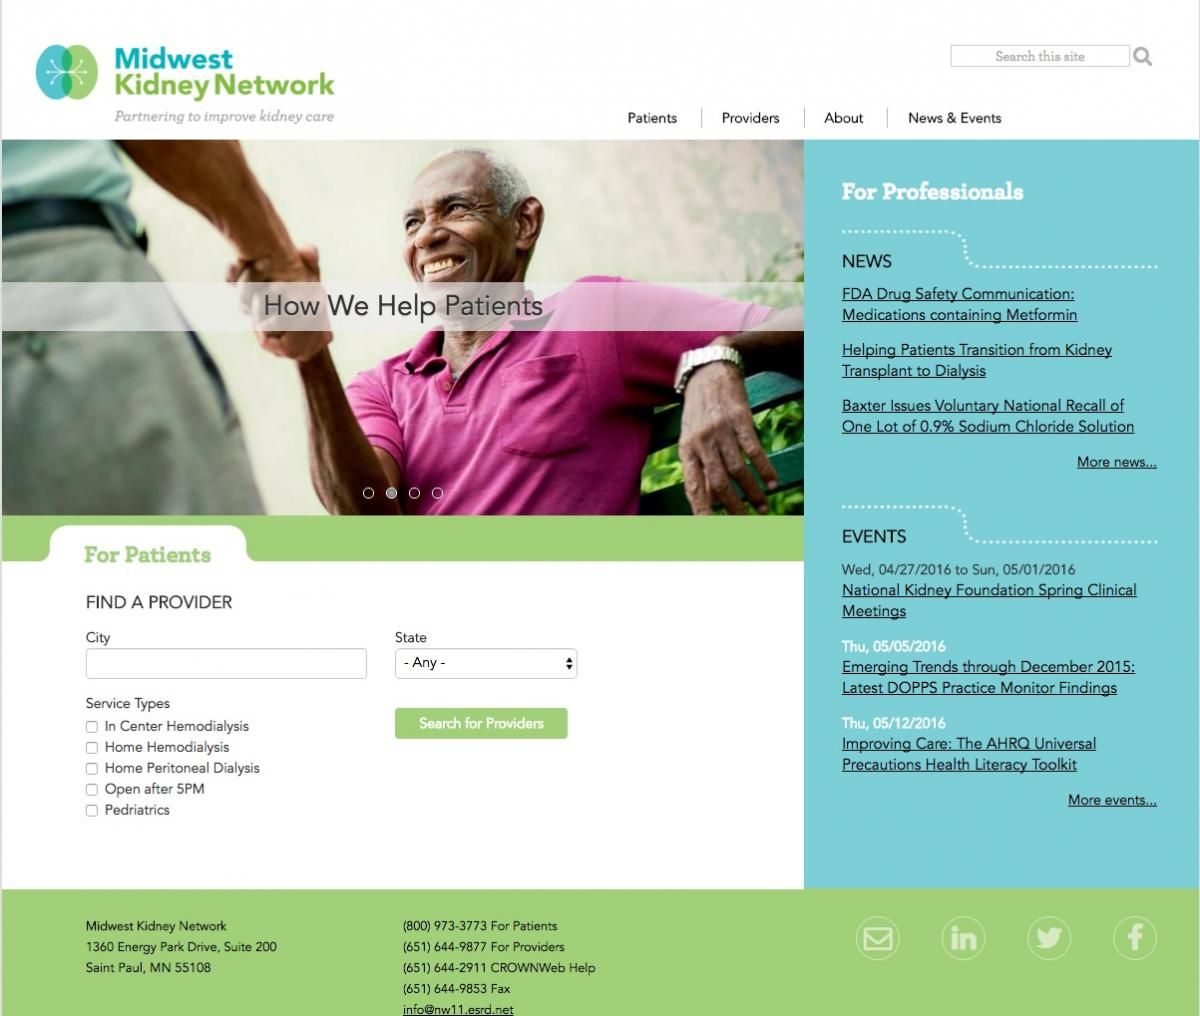 Midwest Kidney Network website design and development